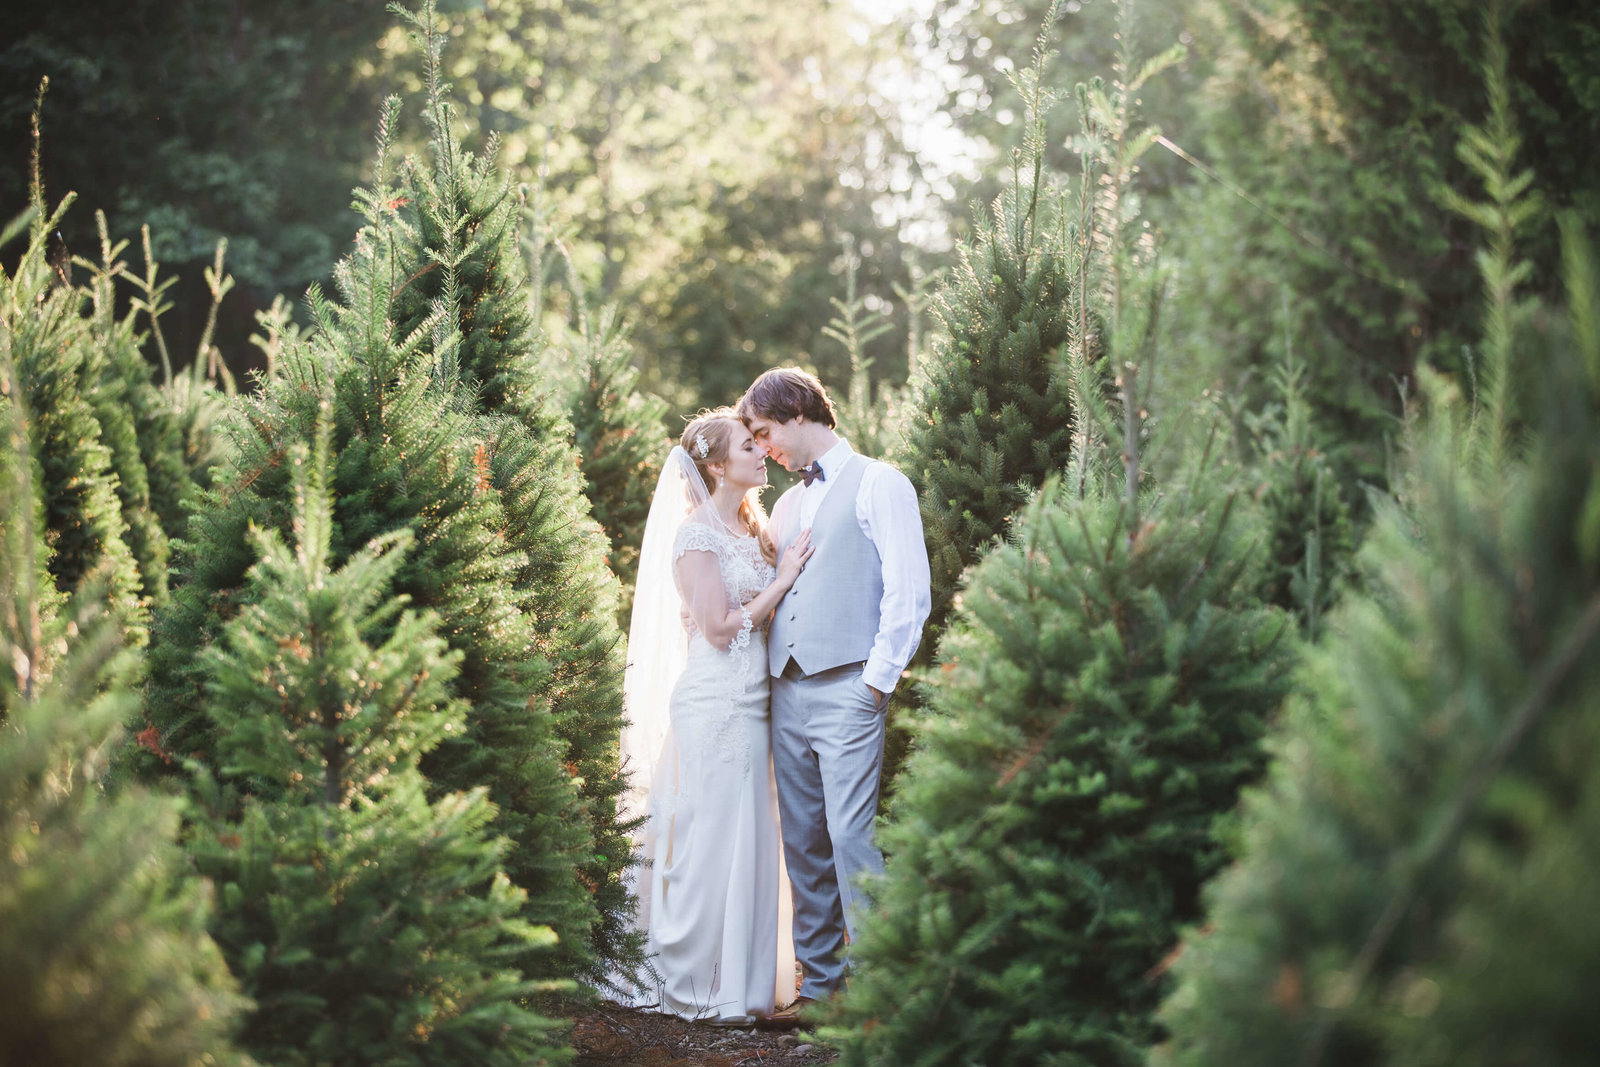 Trinity-tree-farm-wedding-photos-by-Adina-Preston-Photography-2019-789